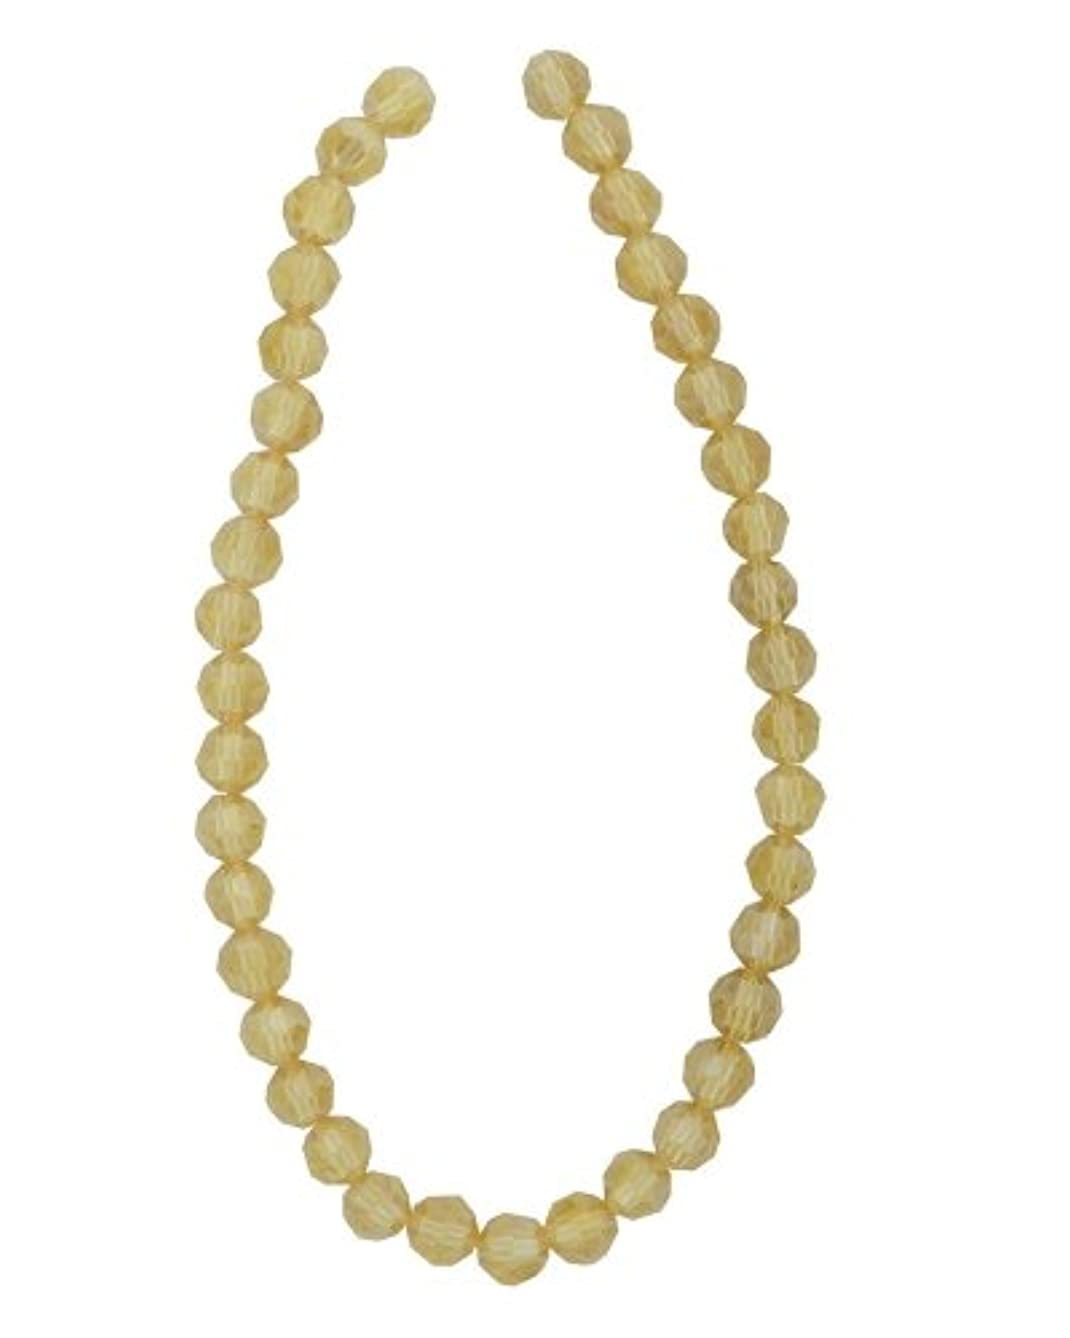 Tennessee Crafts 2795 Faceted Round Gold Champagne AB Finish Glass Bead, 39-Piece